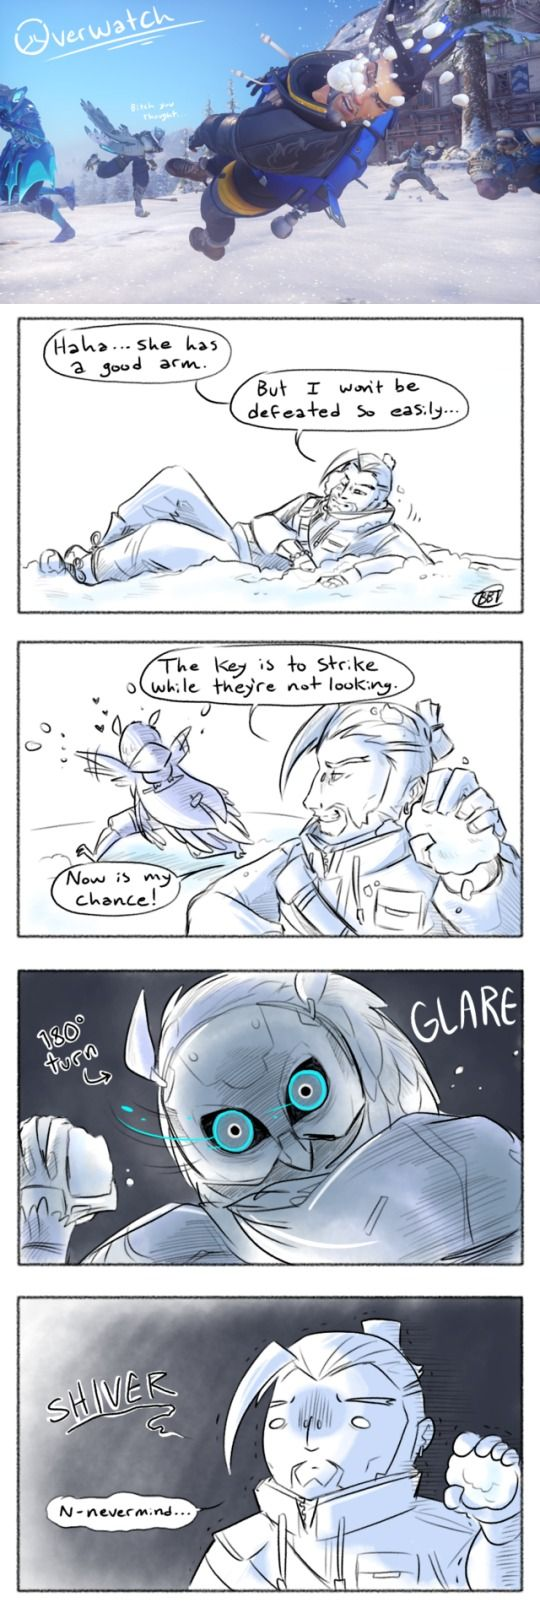 A continuation on that snowball fight scene Blizzard provided us. Also do not mess with the owl lady she will fxxk you up.